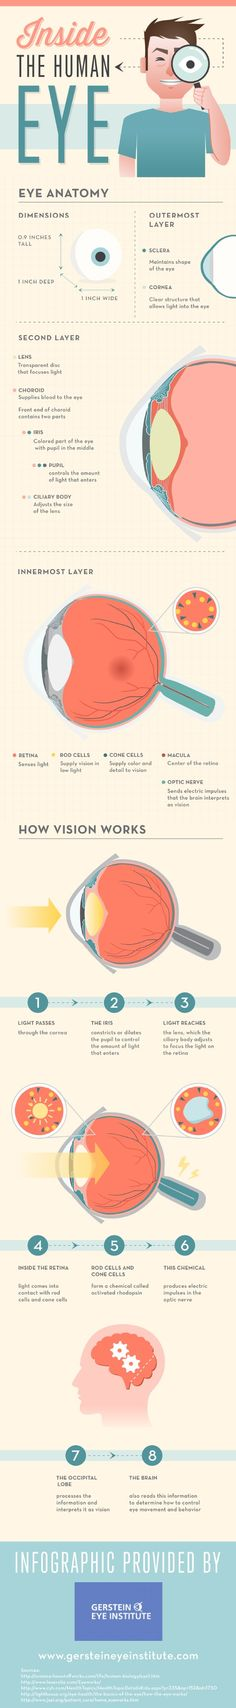 The choroid is the part of the eye that contains the iris and the ciliary body. Take a look at this infographic from a Chicago glaucoma specialist to learn about the anatomy of the human eye.